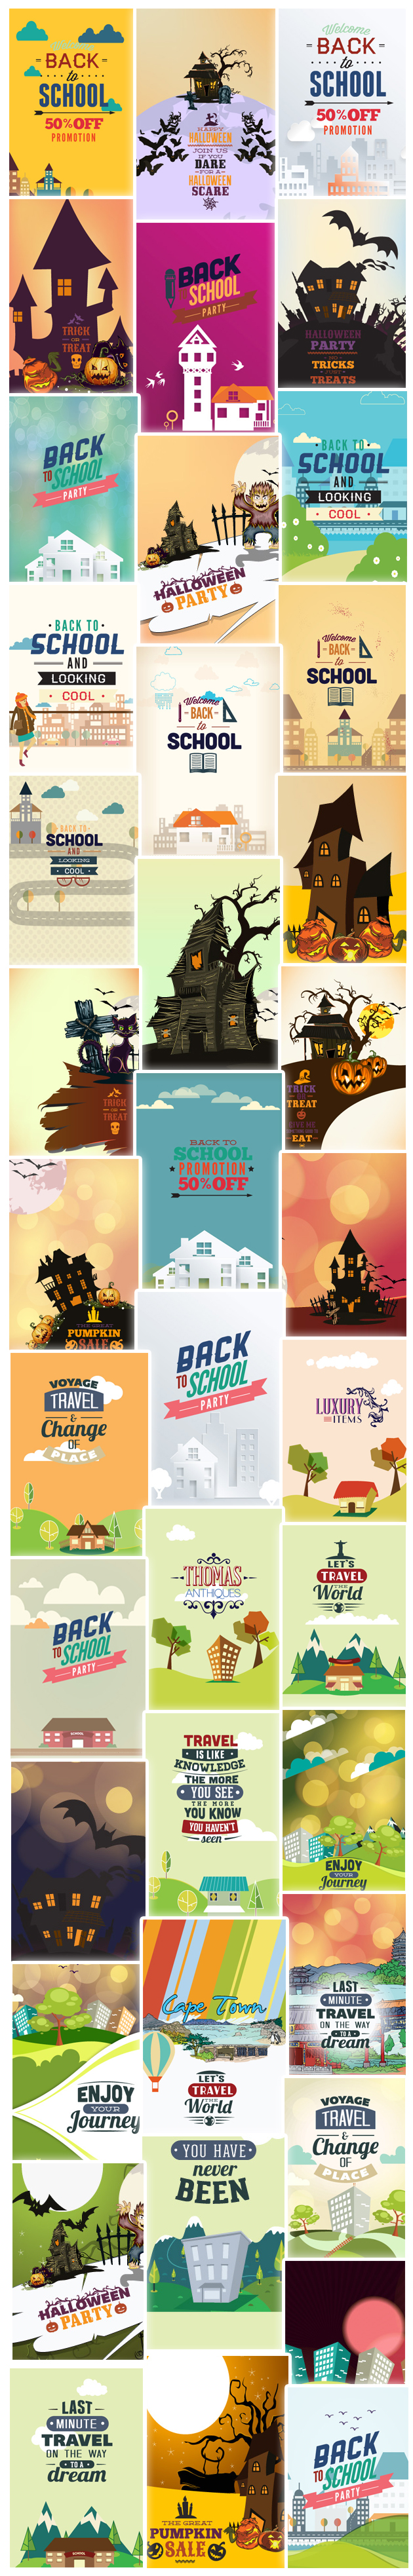 vector-buildings-illustrations